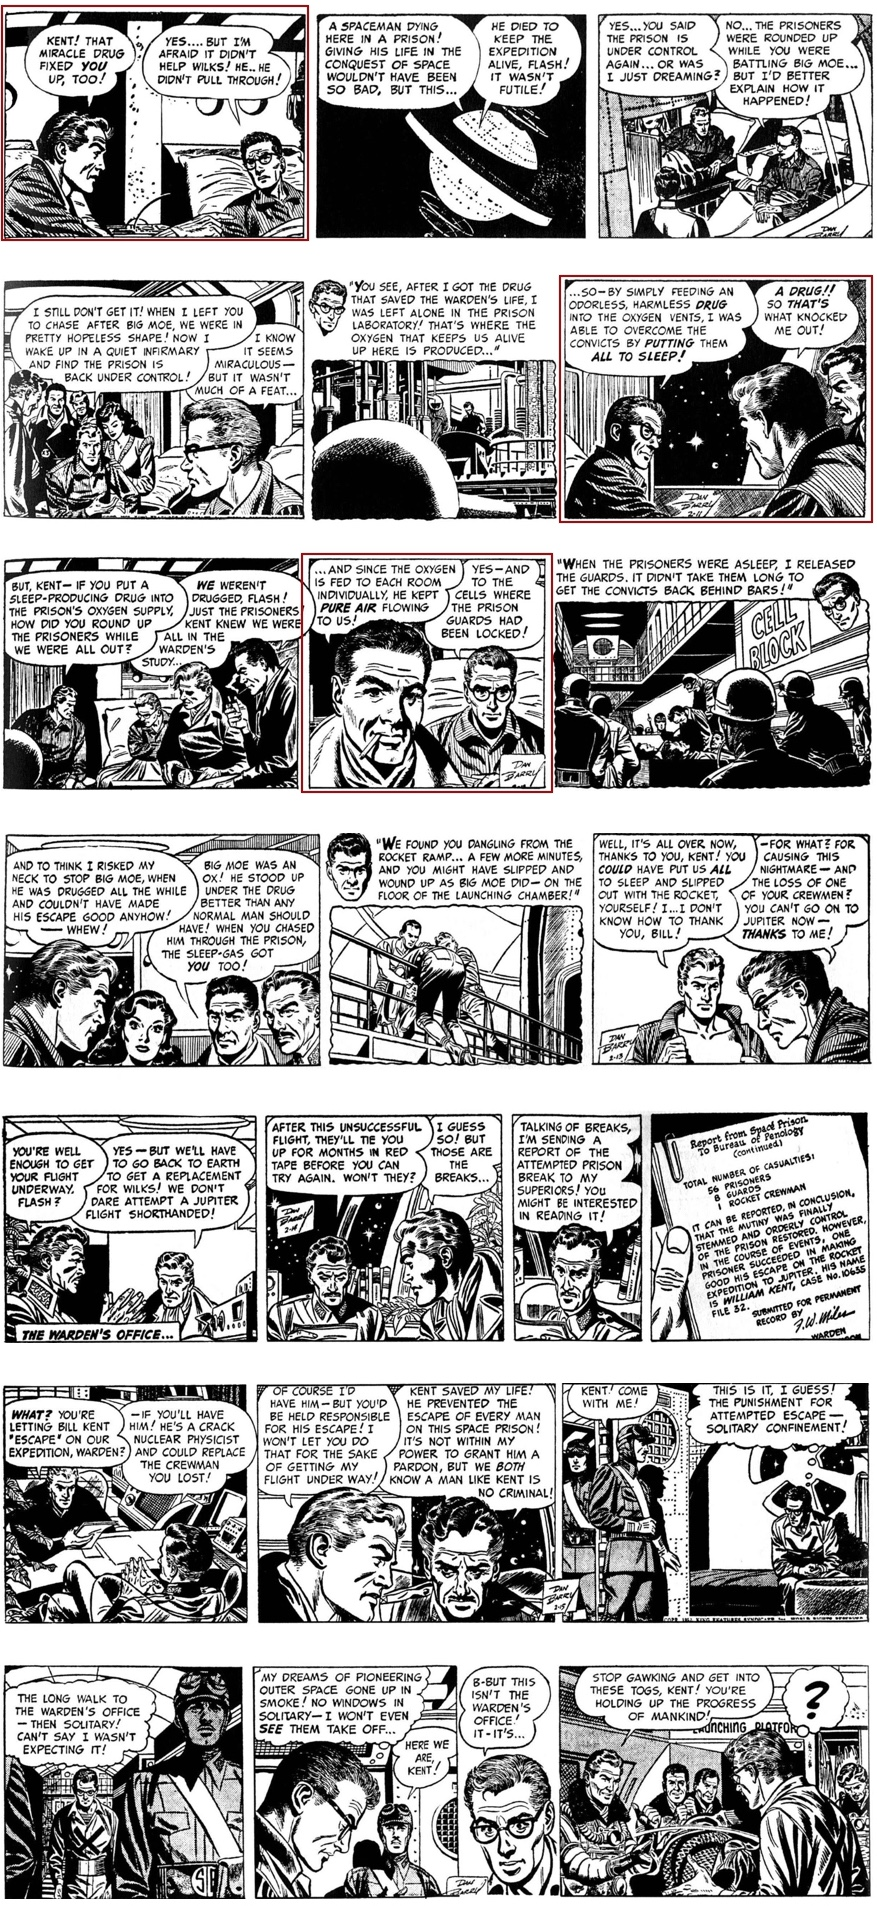 Flash Gordon 9-16 februari 1952